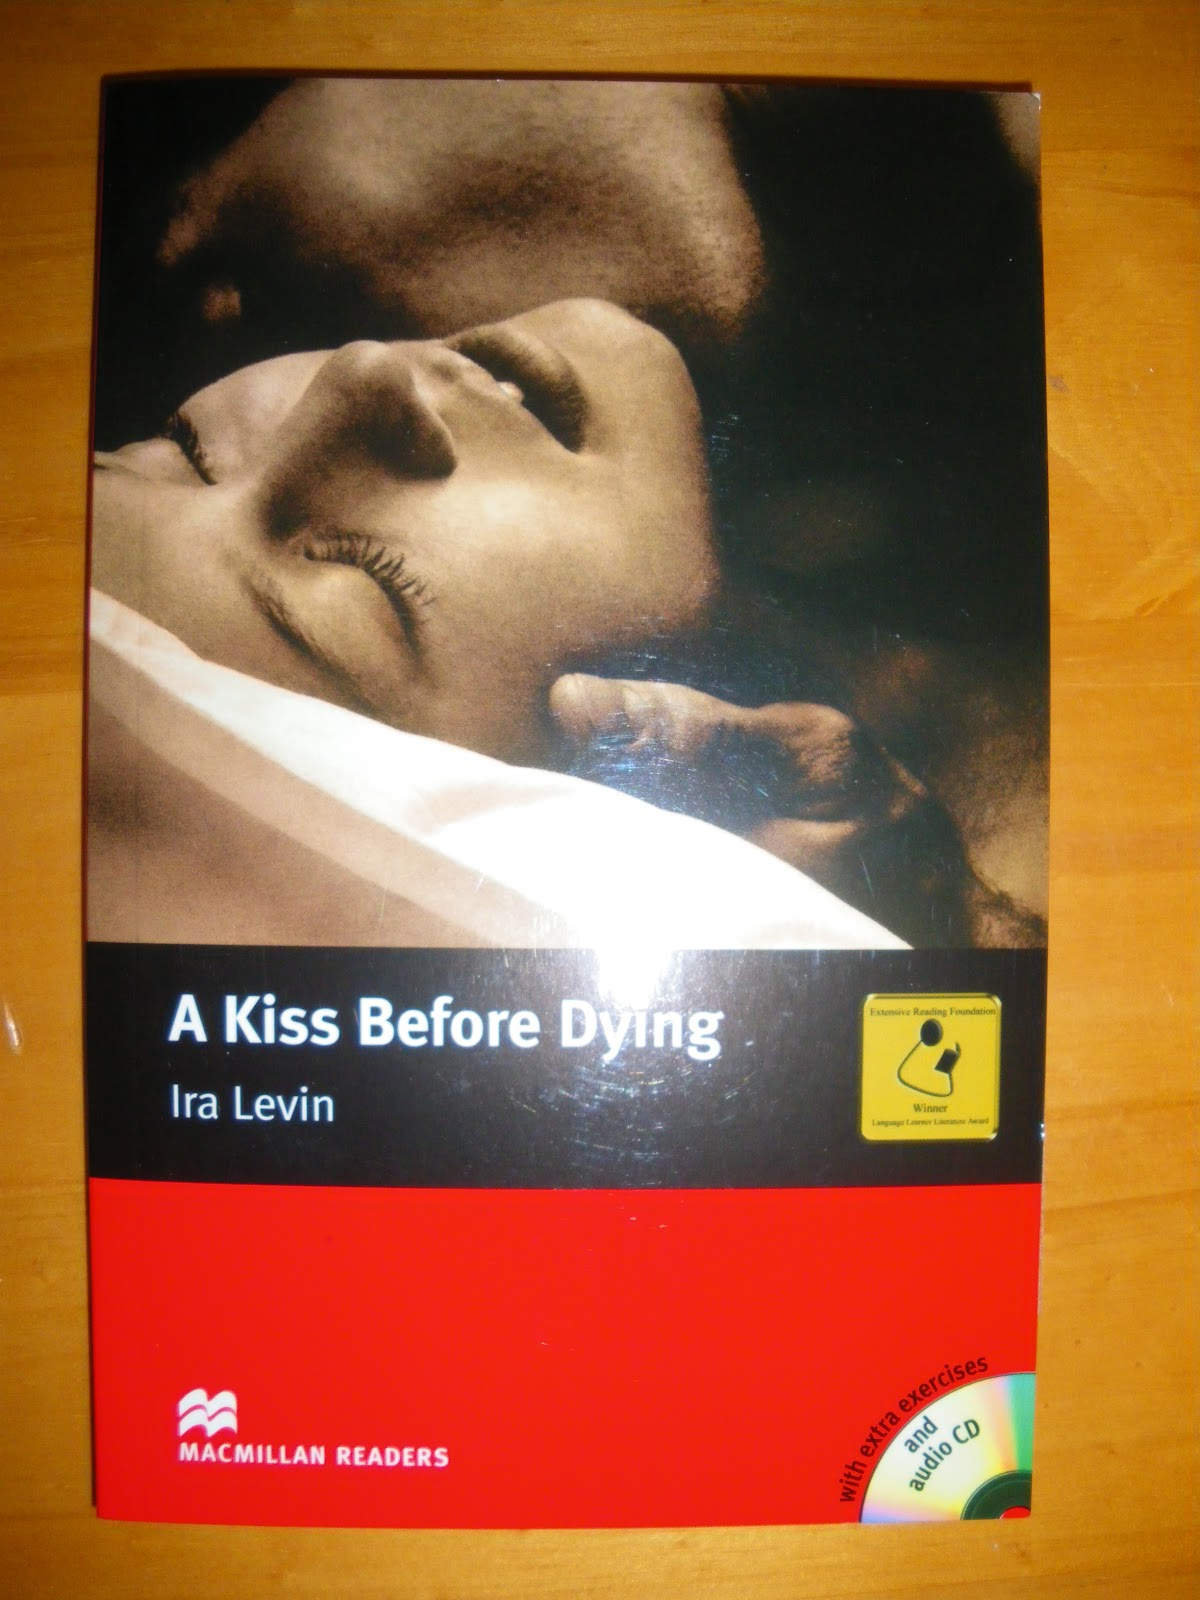 a book analysis on a kiss before dying by ira levin Buy a kiss before dying by ira levin from amazon's fiction books store everyday low prices on a huge range of new releases and classic fiction.